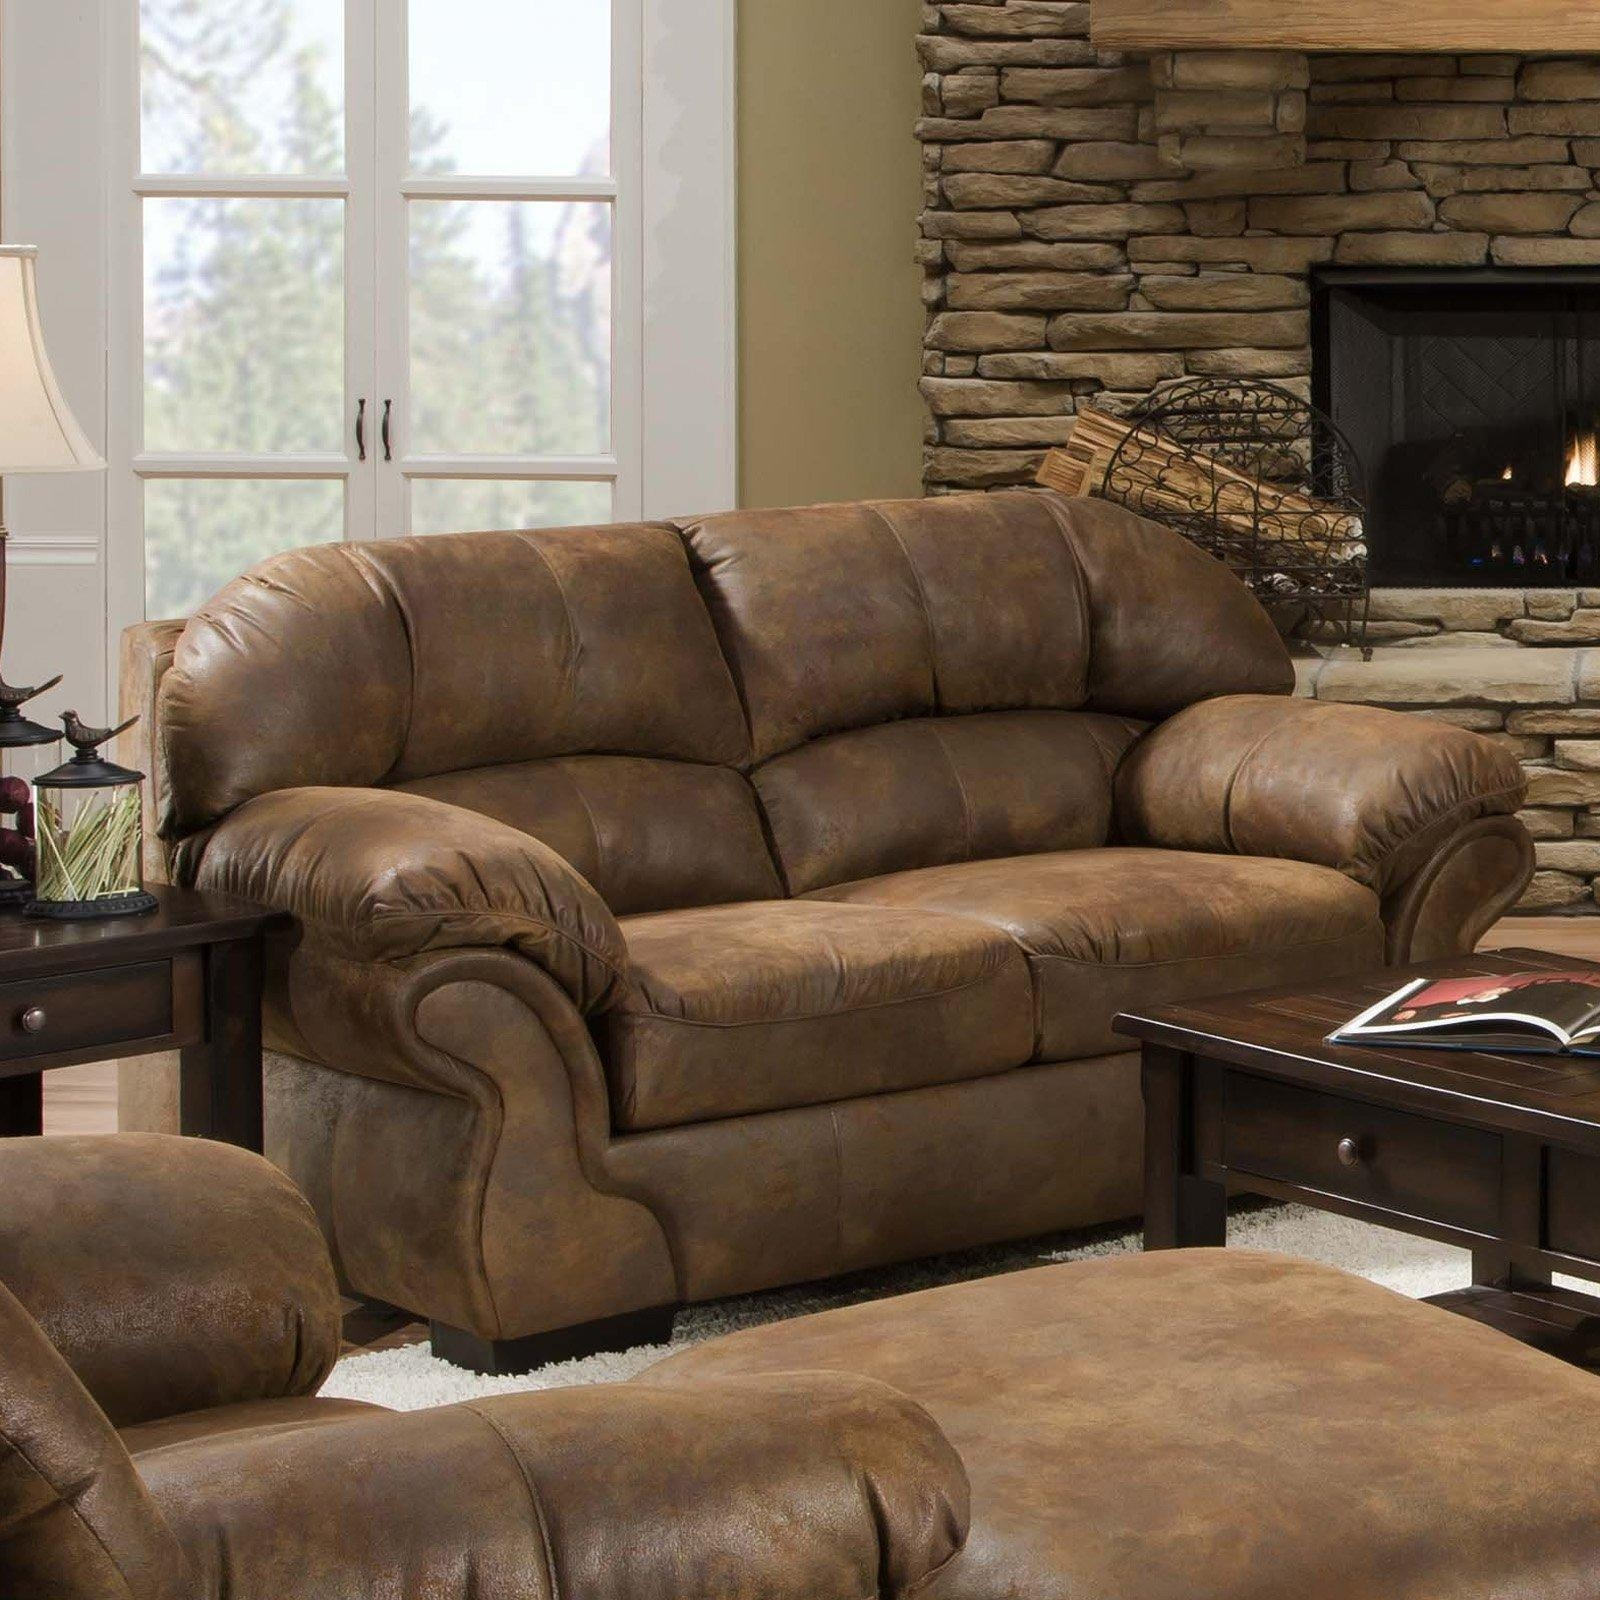 20+ Choices Of Simmons Microfiber Sofas